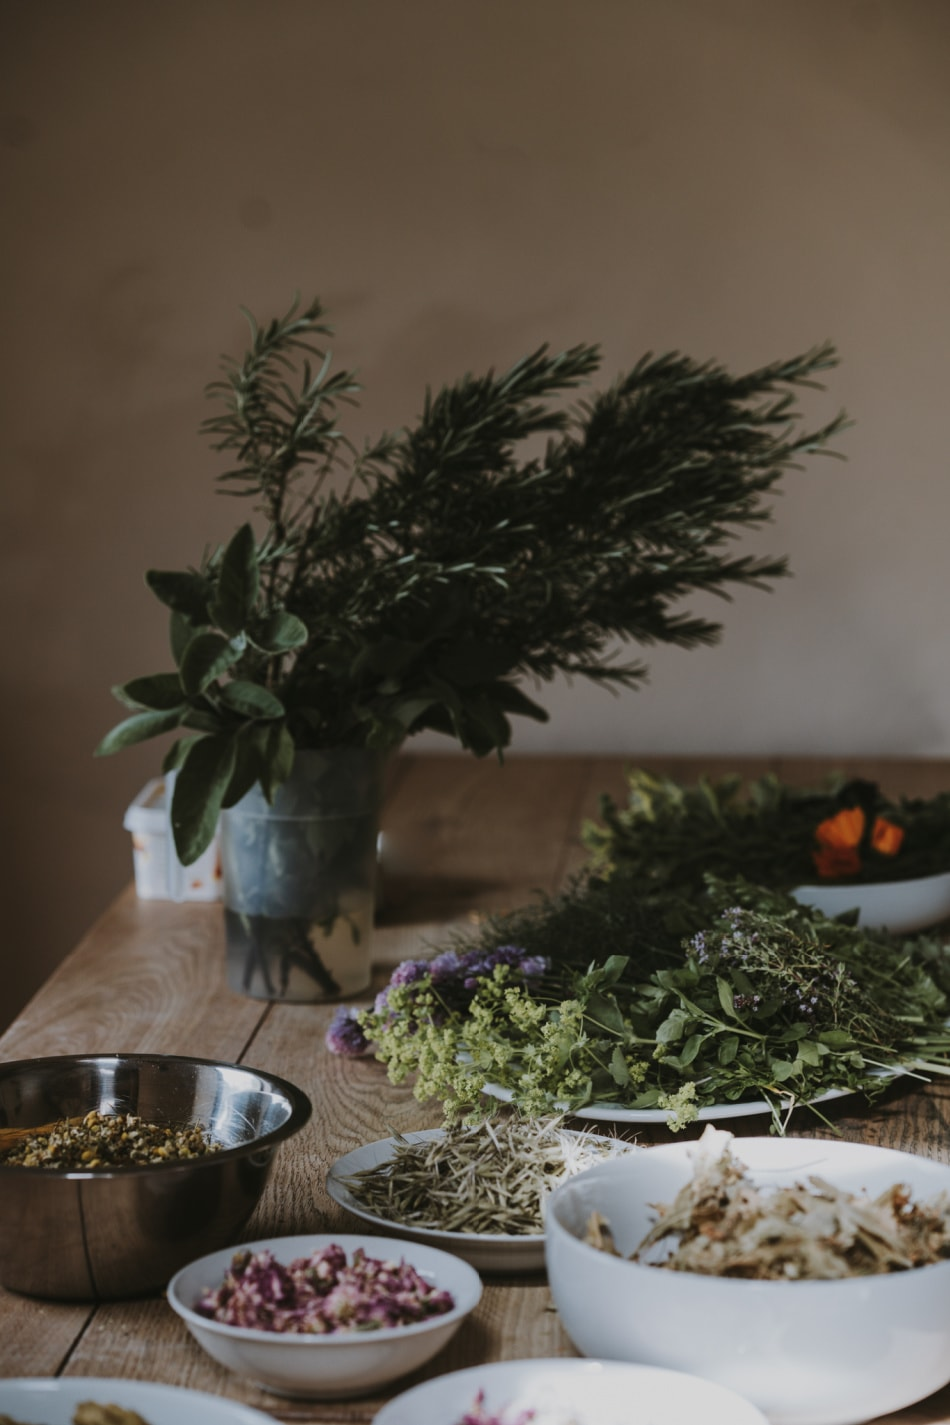 herbs in bowls on table